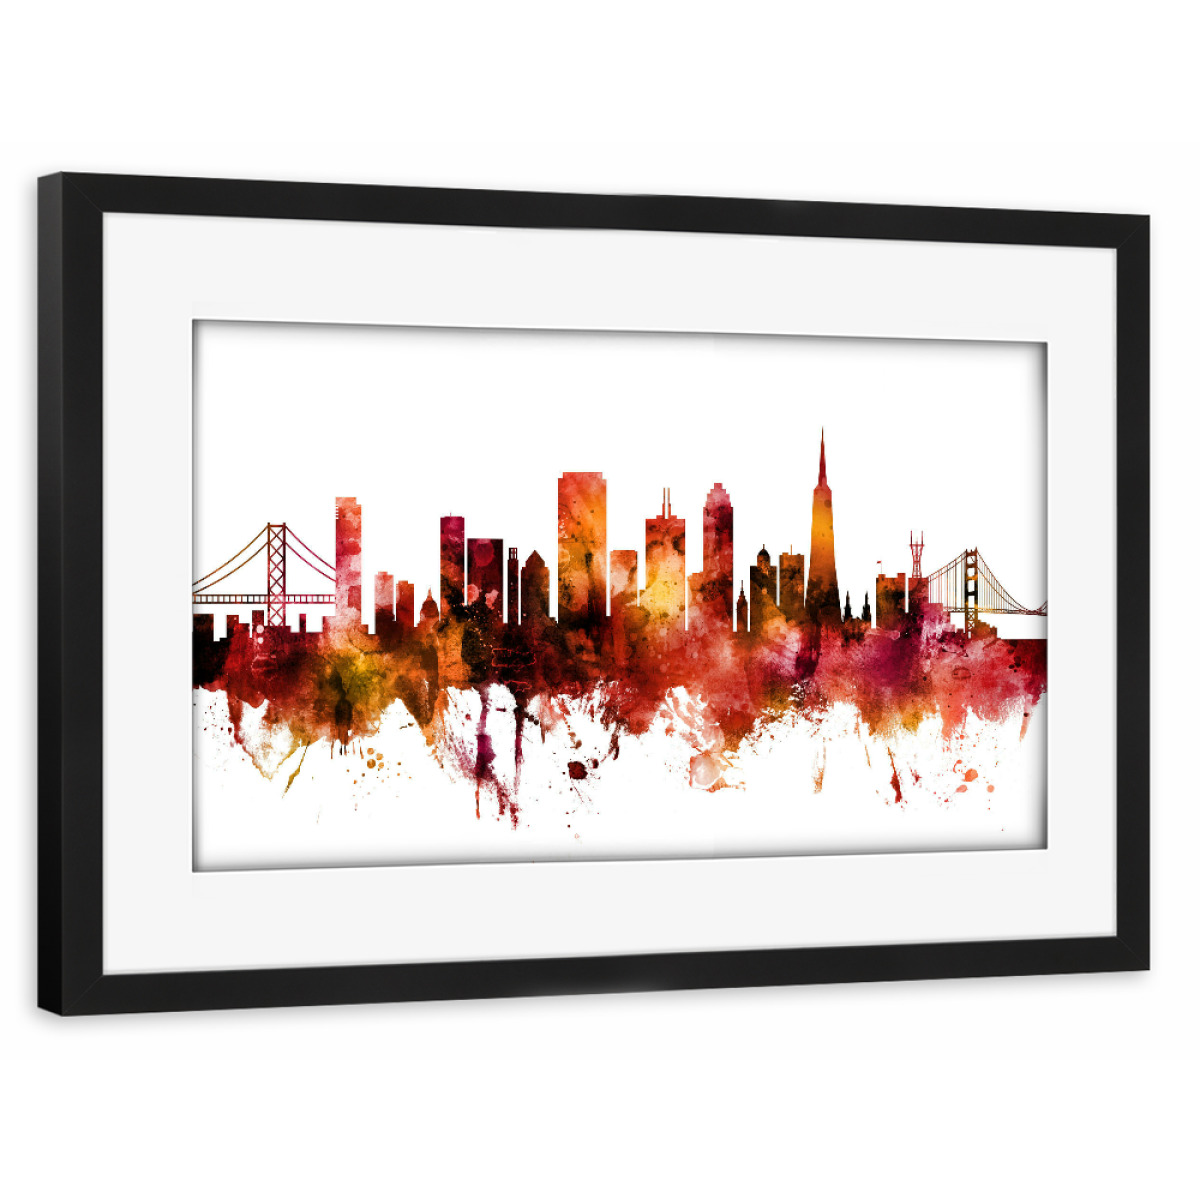 Purchase the San Francisco City Skyline red as a Frame at